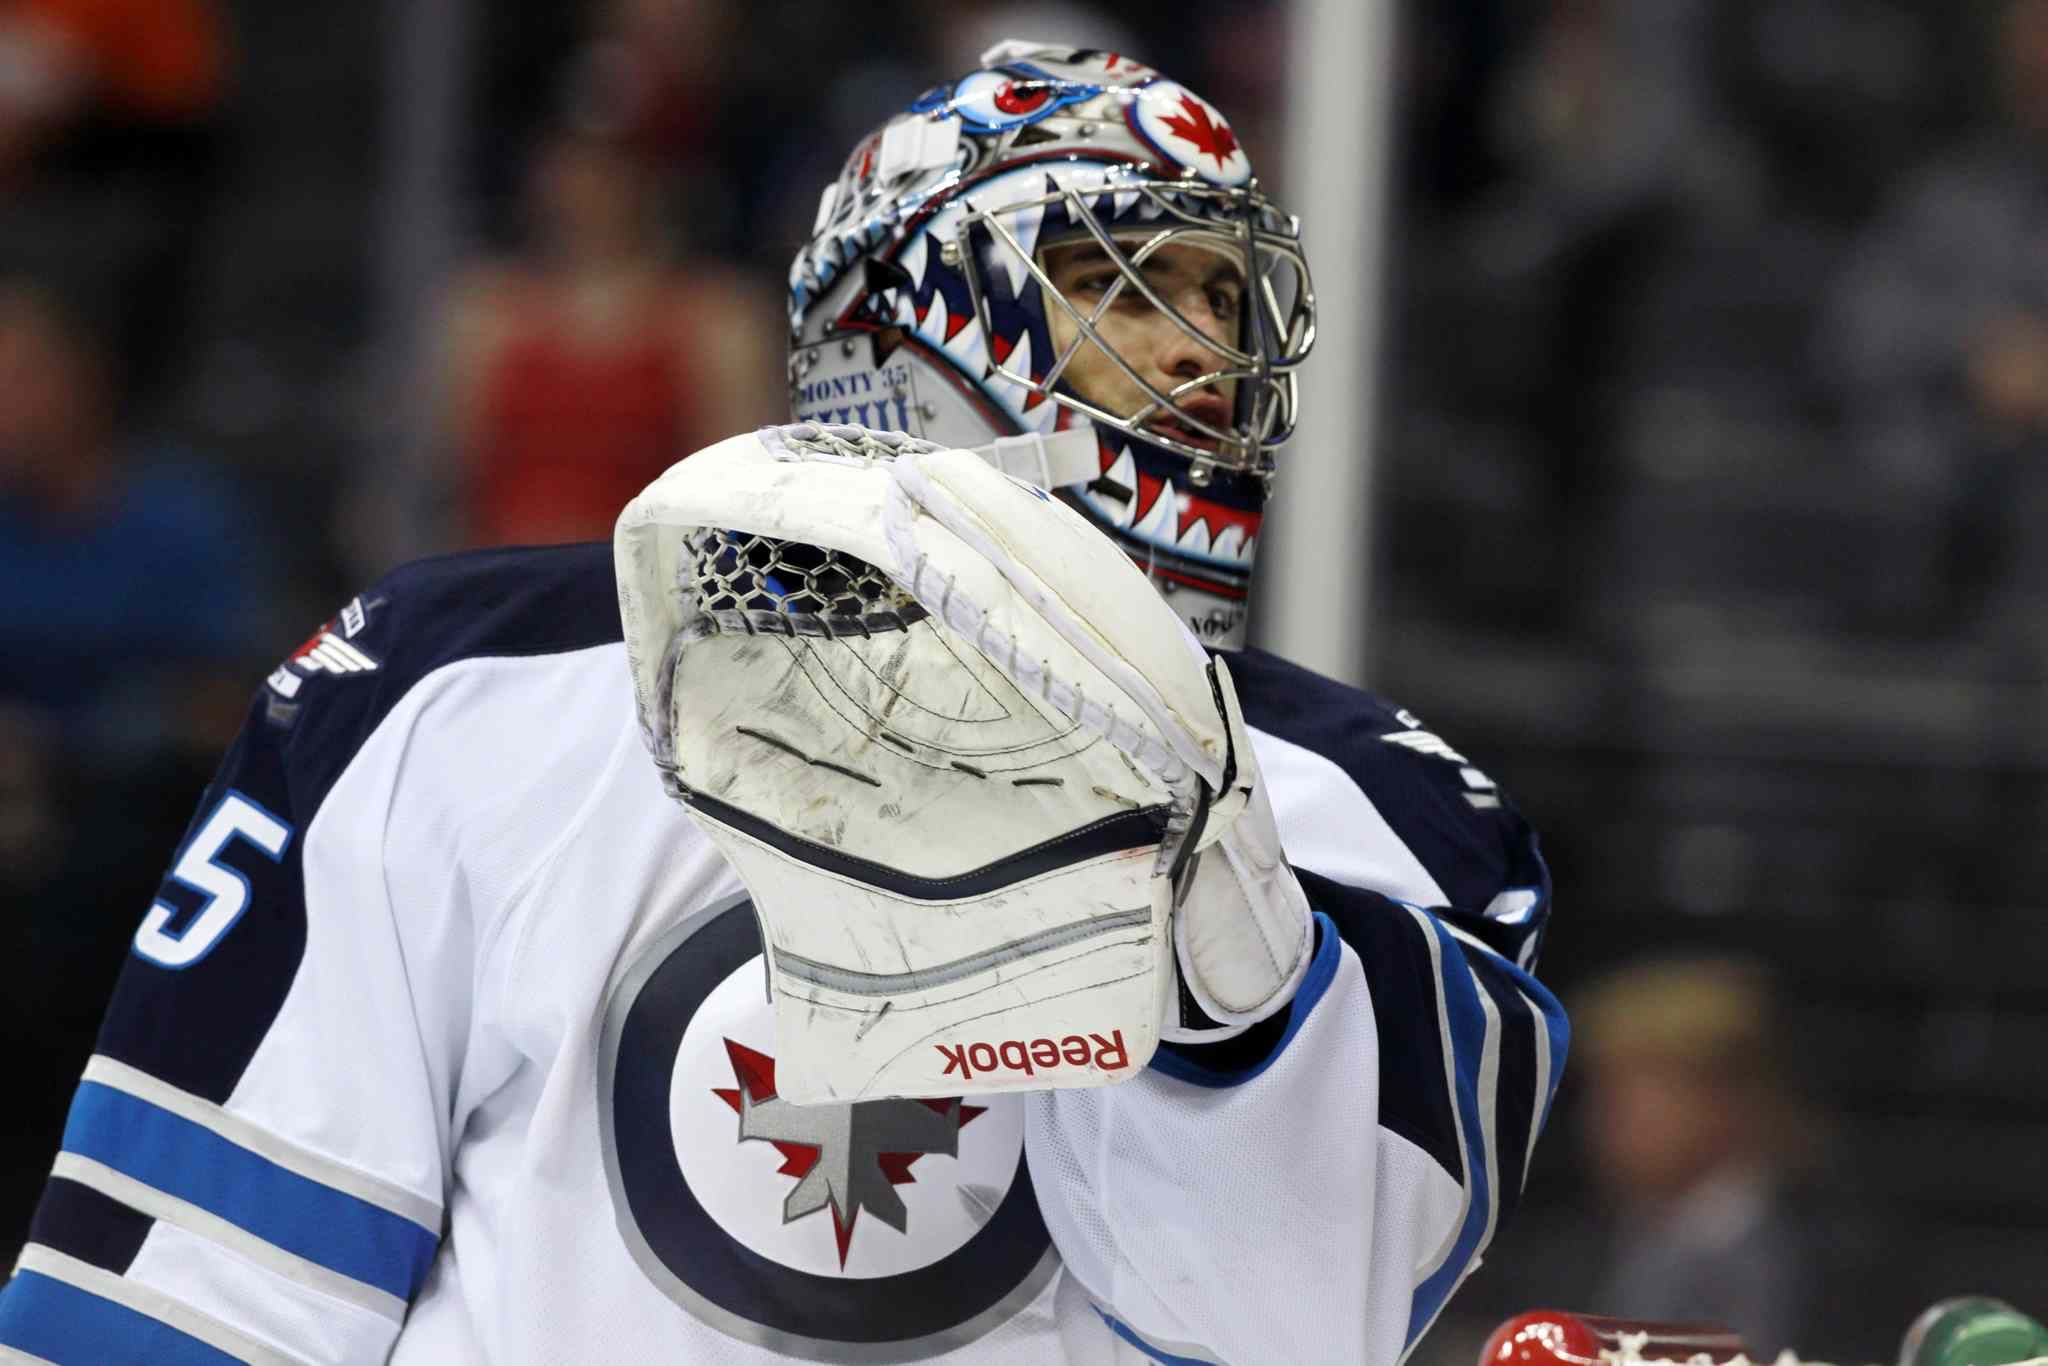 Winnipeg Jets backup goalie Al Montoya has better numbers than starter Ondrej Pavelec. Montoya, who grew up in Chicago, might start against the Blackhawks tonight.